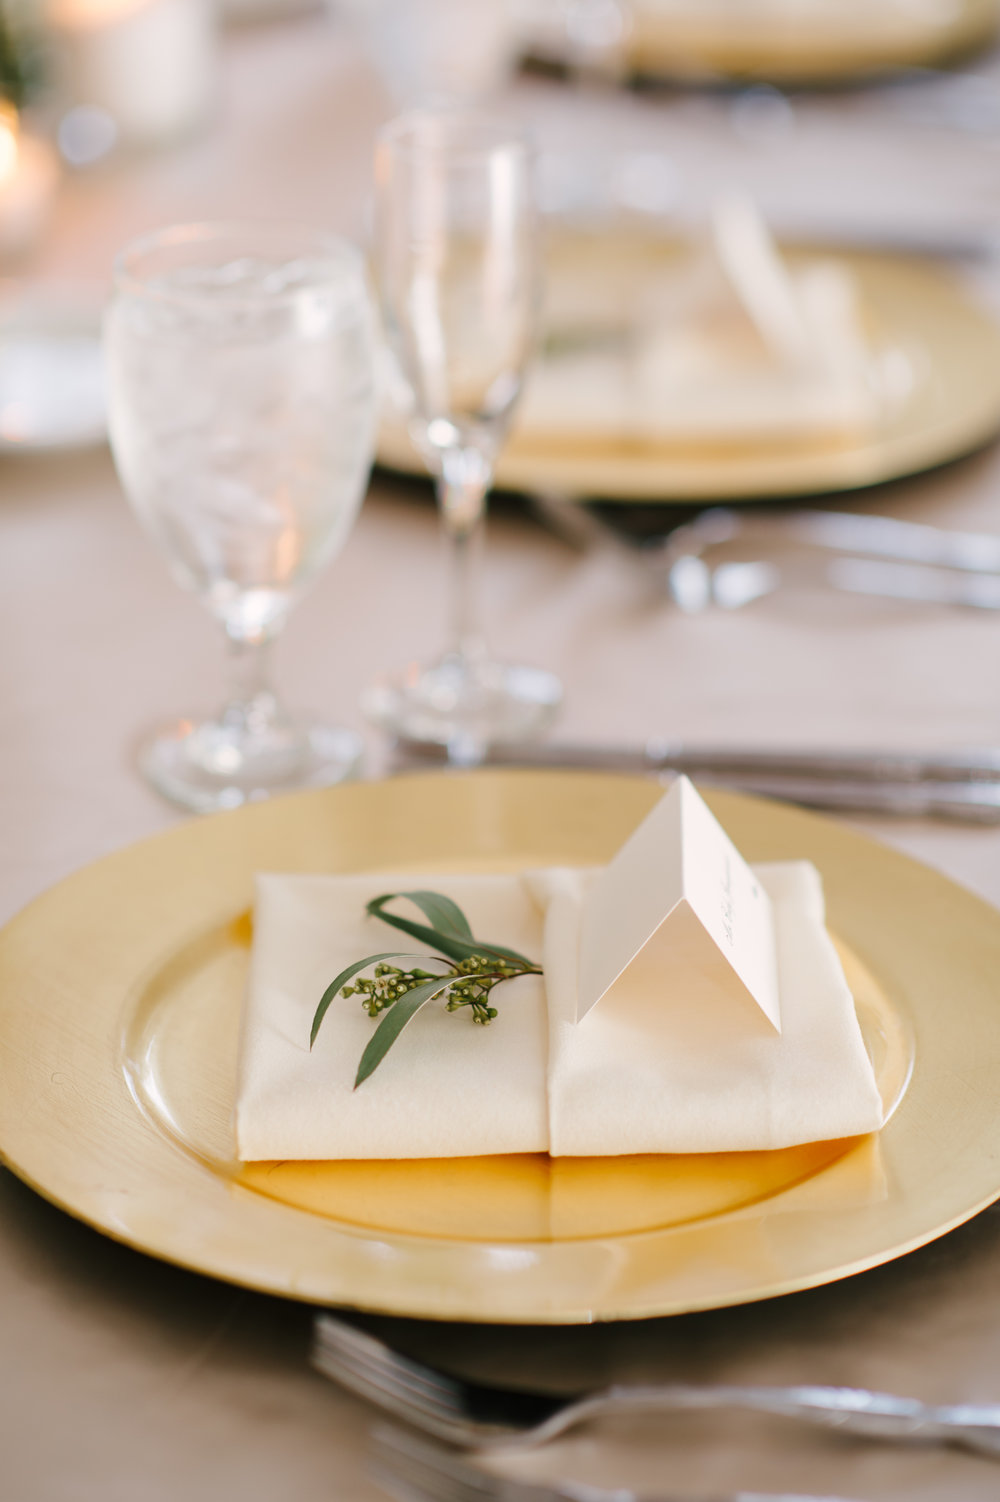 Seeded eucalyptus was set with tent style place cards on gold chargers at each place setting.